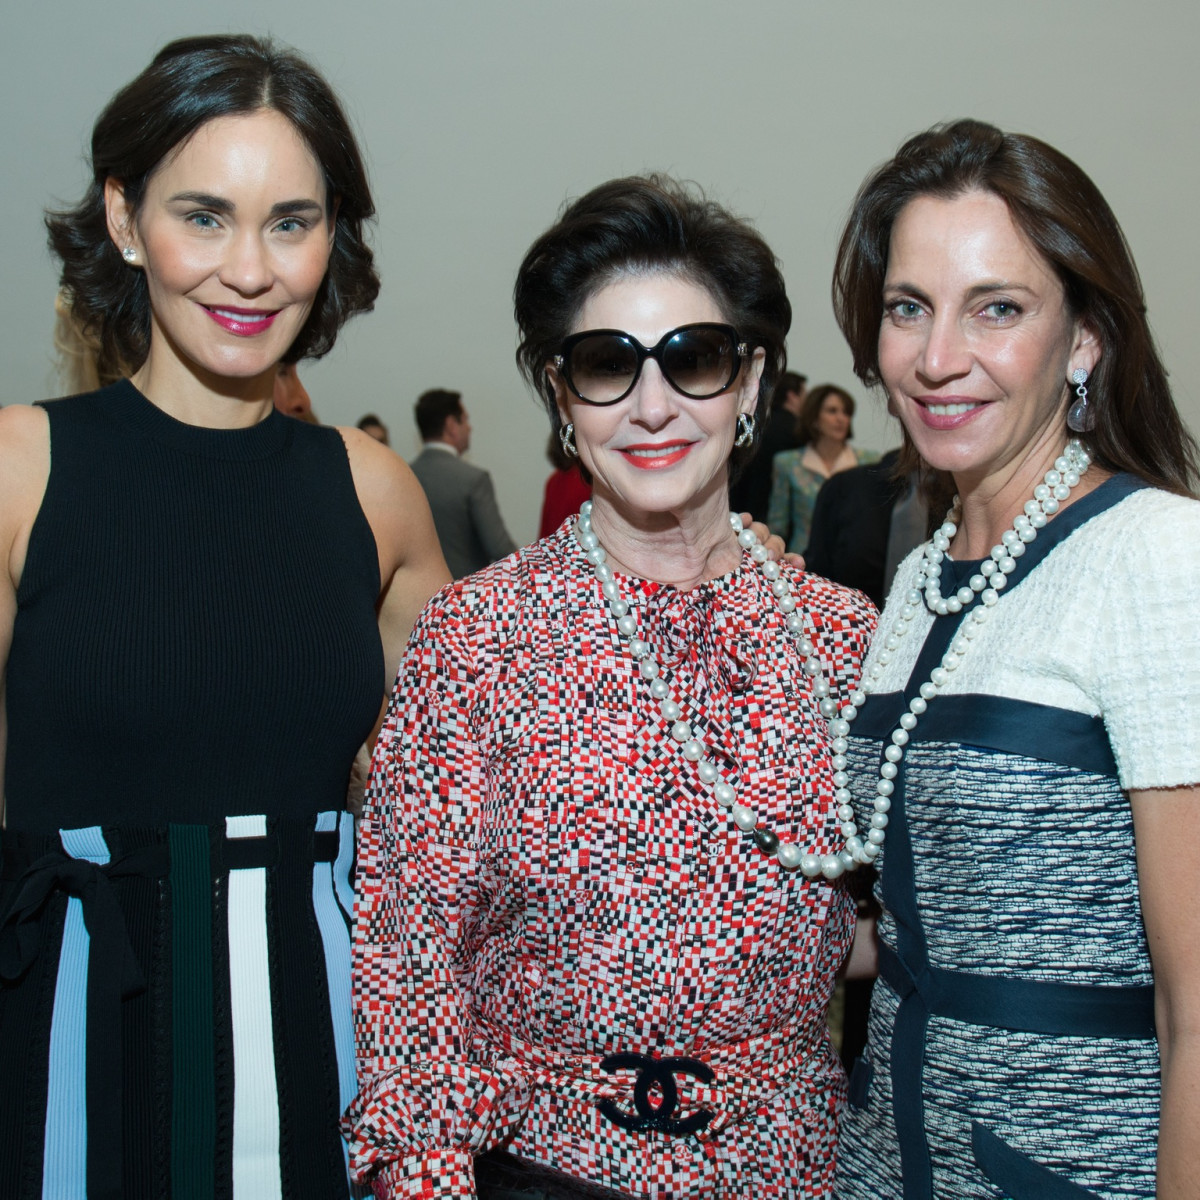 Laura Arnold, Elyse Lanier, Aliyya Stude at Oscar de la Renta fashion show at MFAH